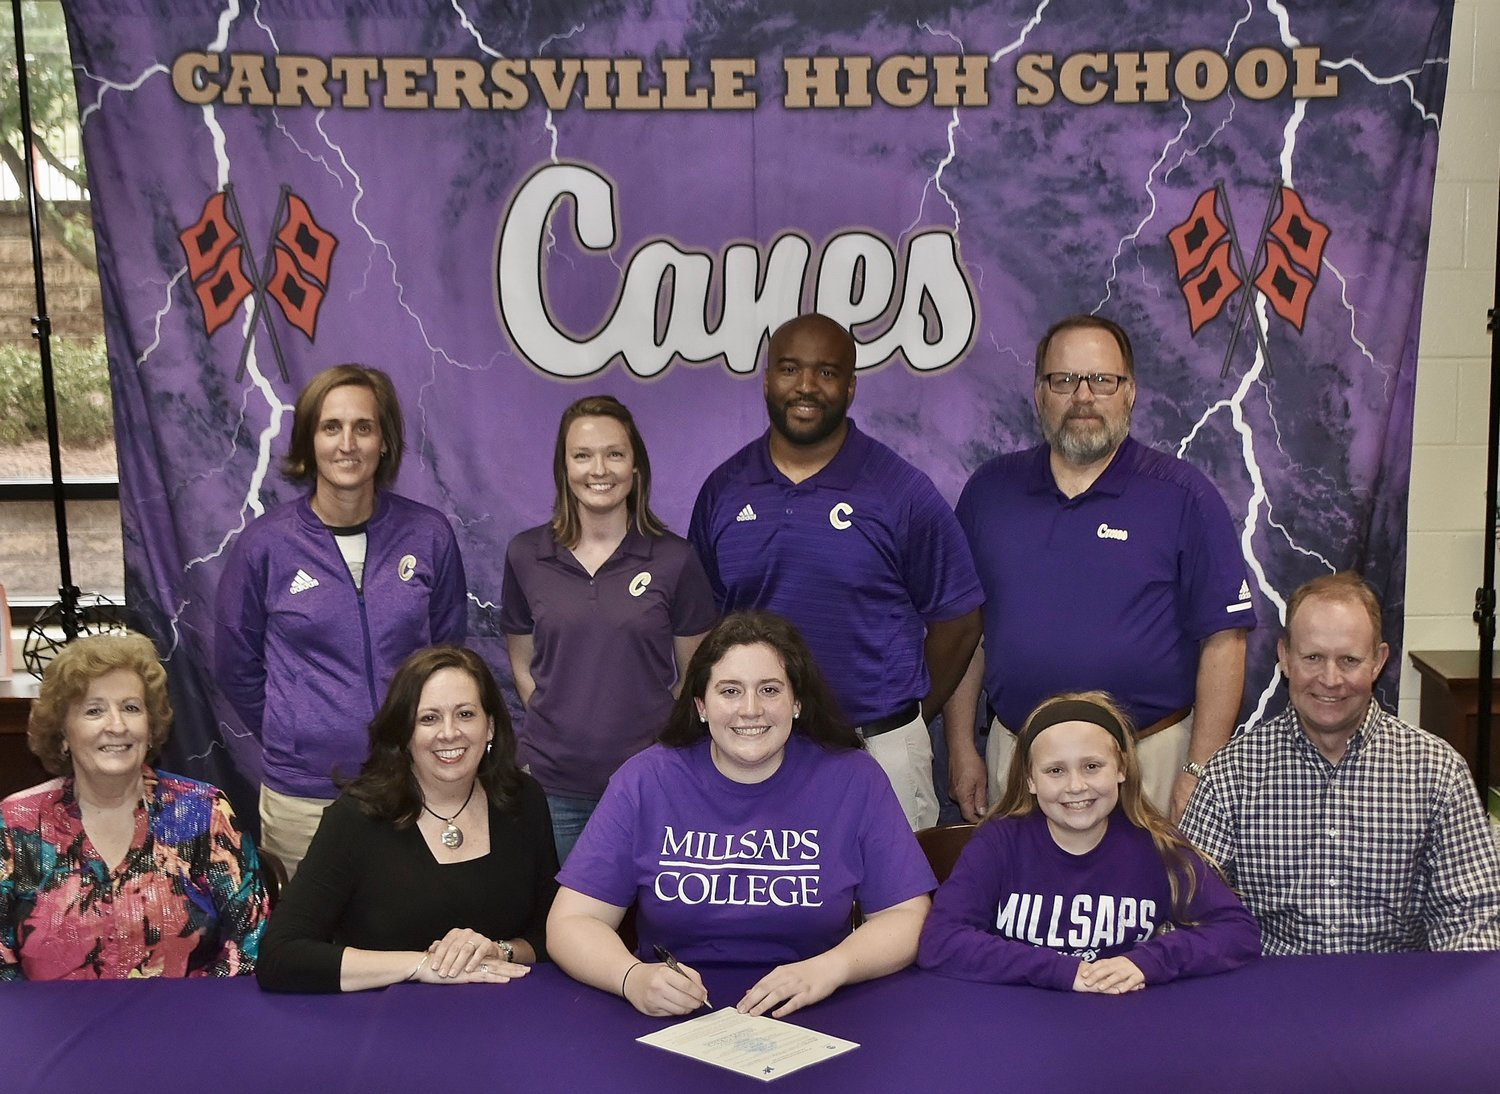 Cartersville High senior Addie Evans signed to play golf at Millsaps College in Jackson, Mississippi. On hand for the signing were, from left, front row: Dorothy Jenkins, grandmother; Angela Evans, mother; Lucy Evans, sister; Shane Evans, father; back row, Shelley Tierce, CHS principal; Megan Boudrie, CHS golf coach; Reggie Perkins, CHS golf coach; and Darrell Demastus, CHS athletic director.